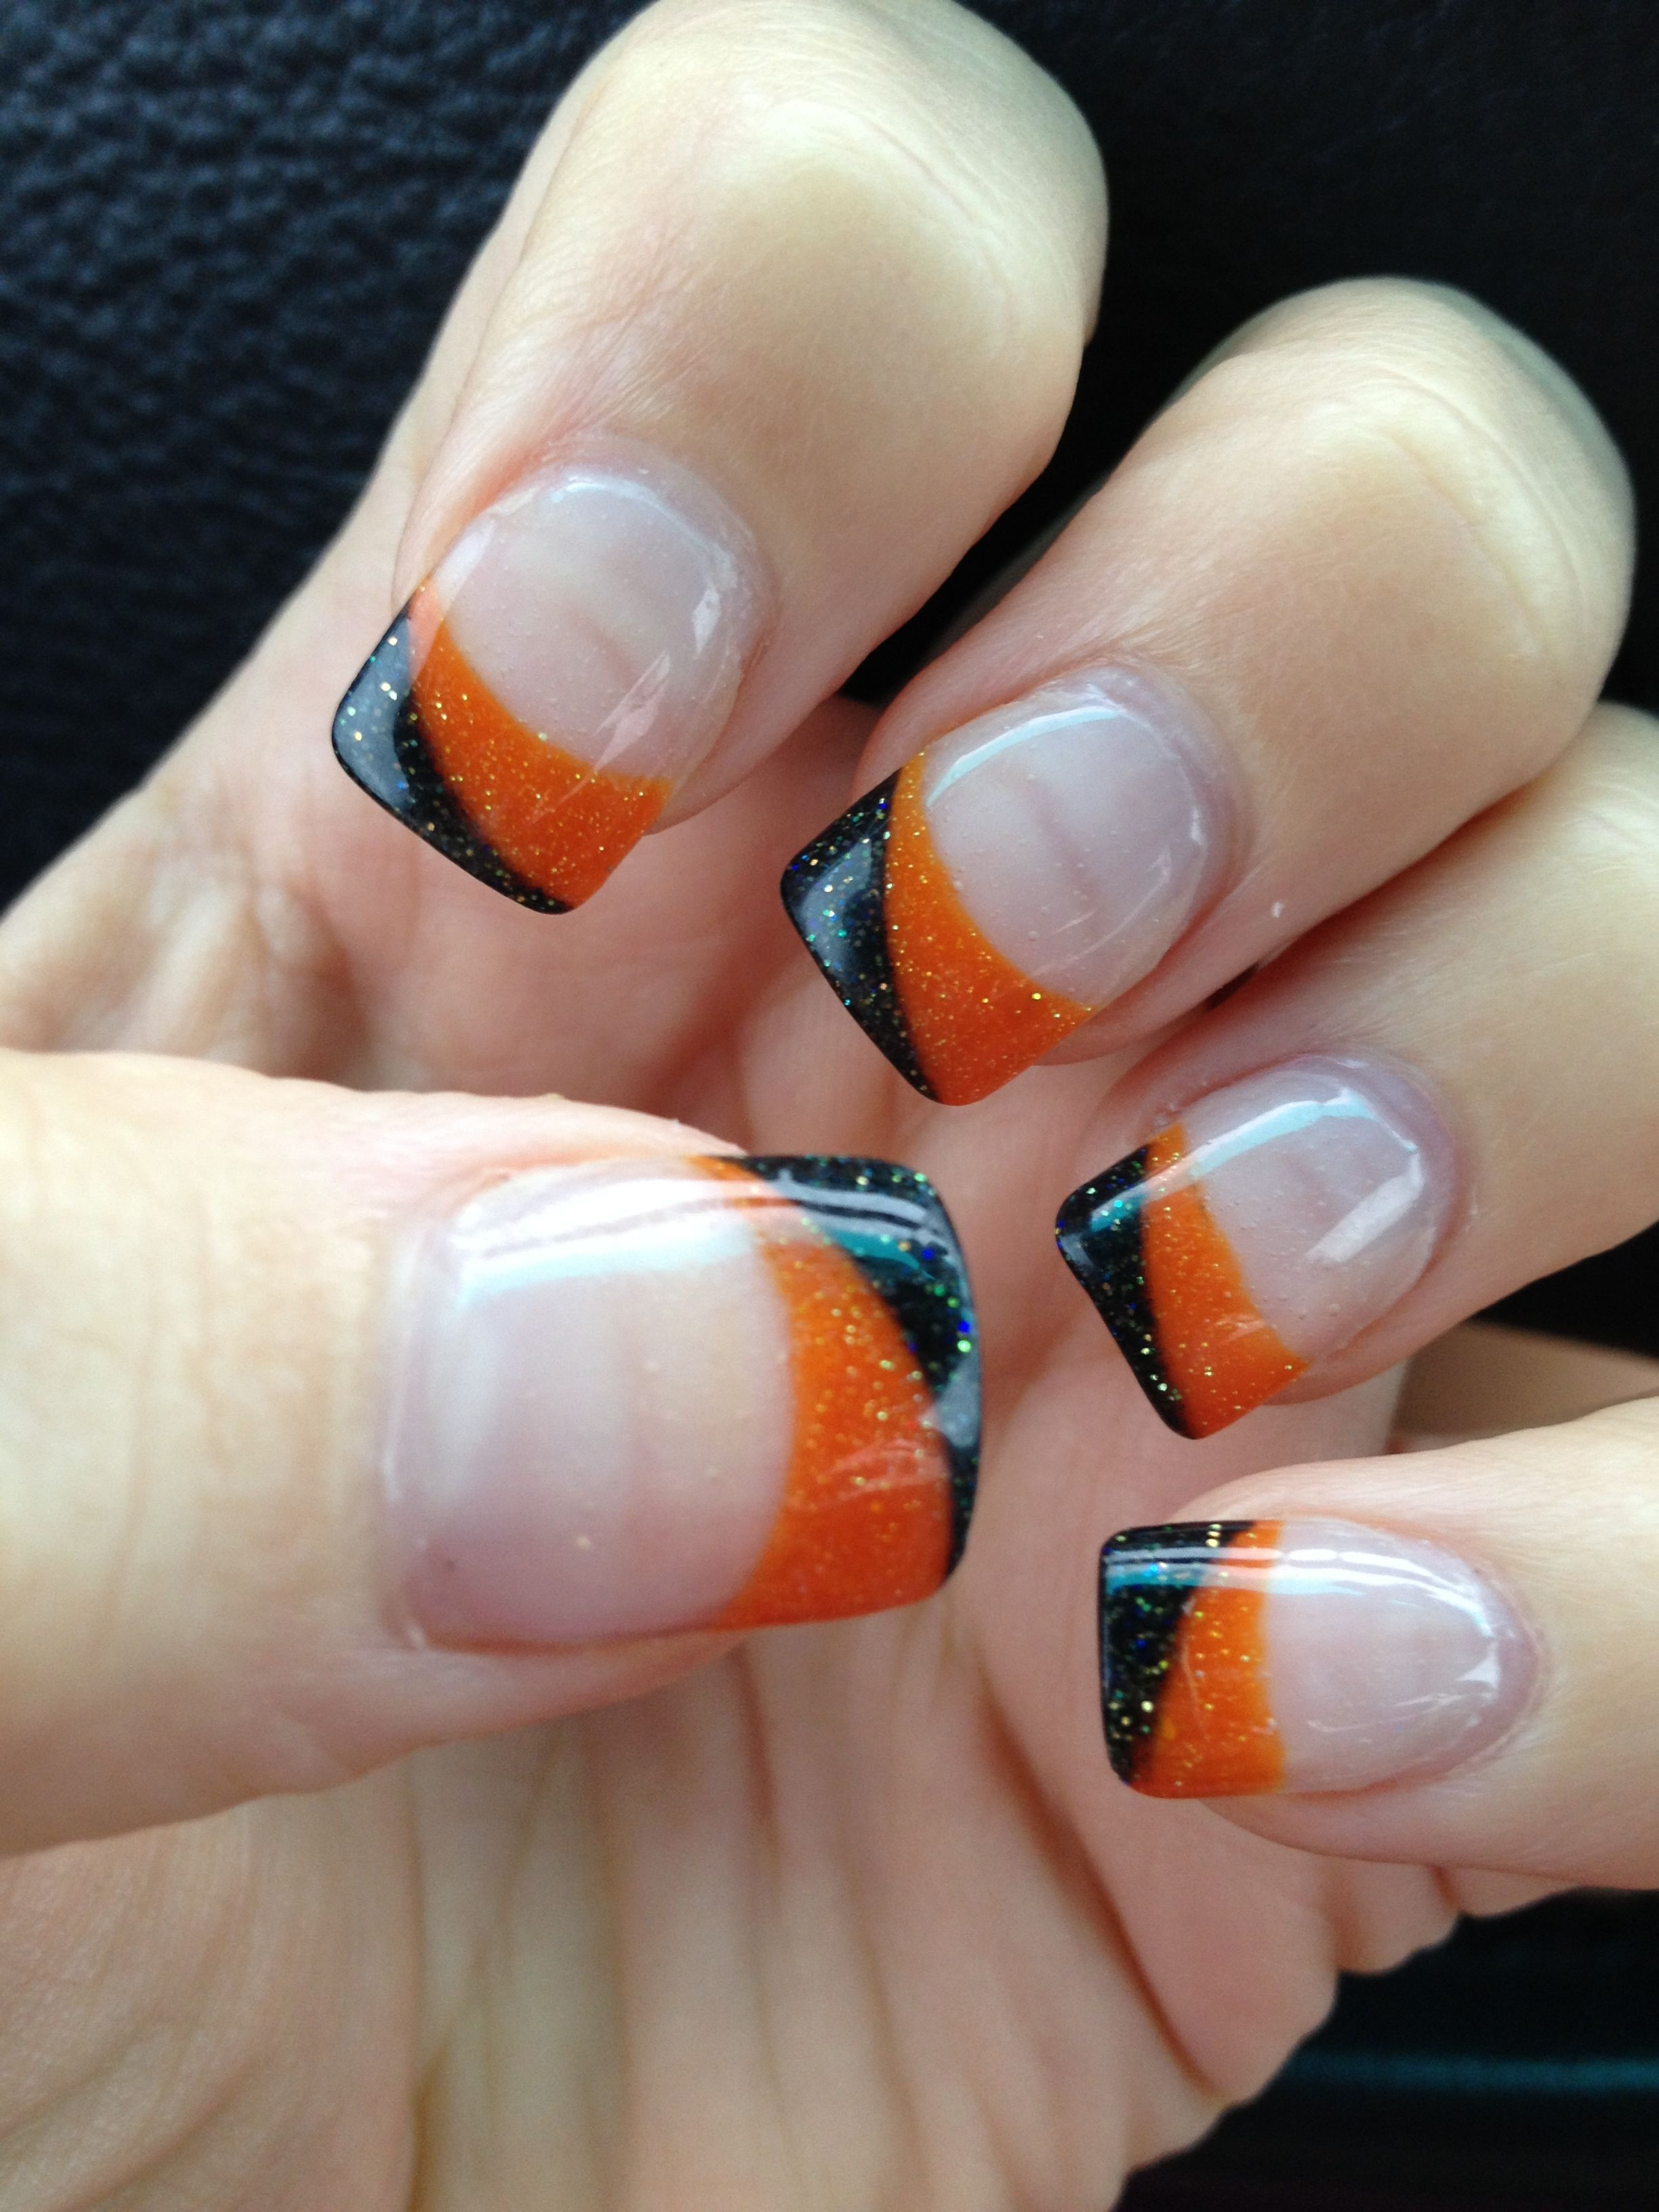 Halloween acrylic nails. Black, orange, sparkley